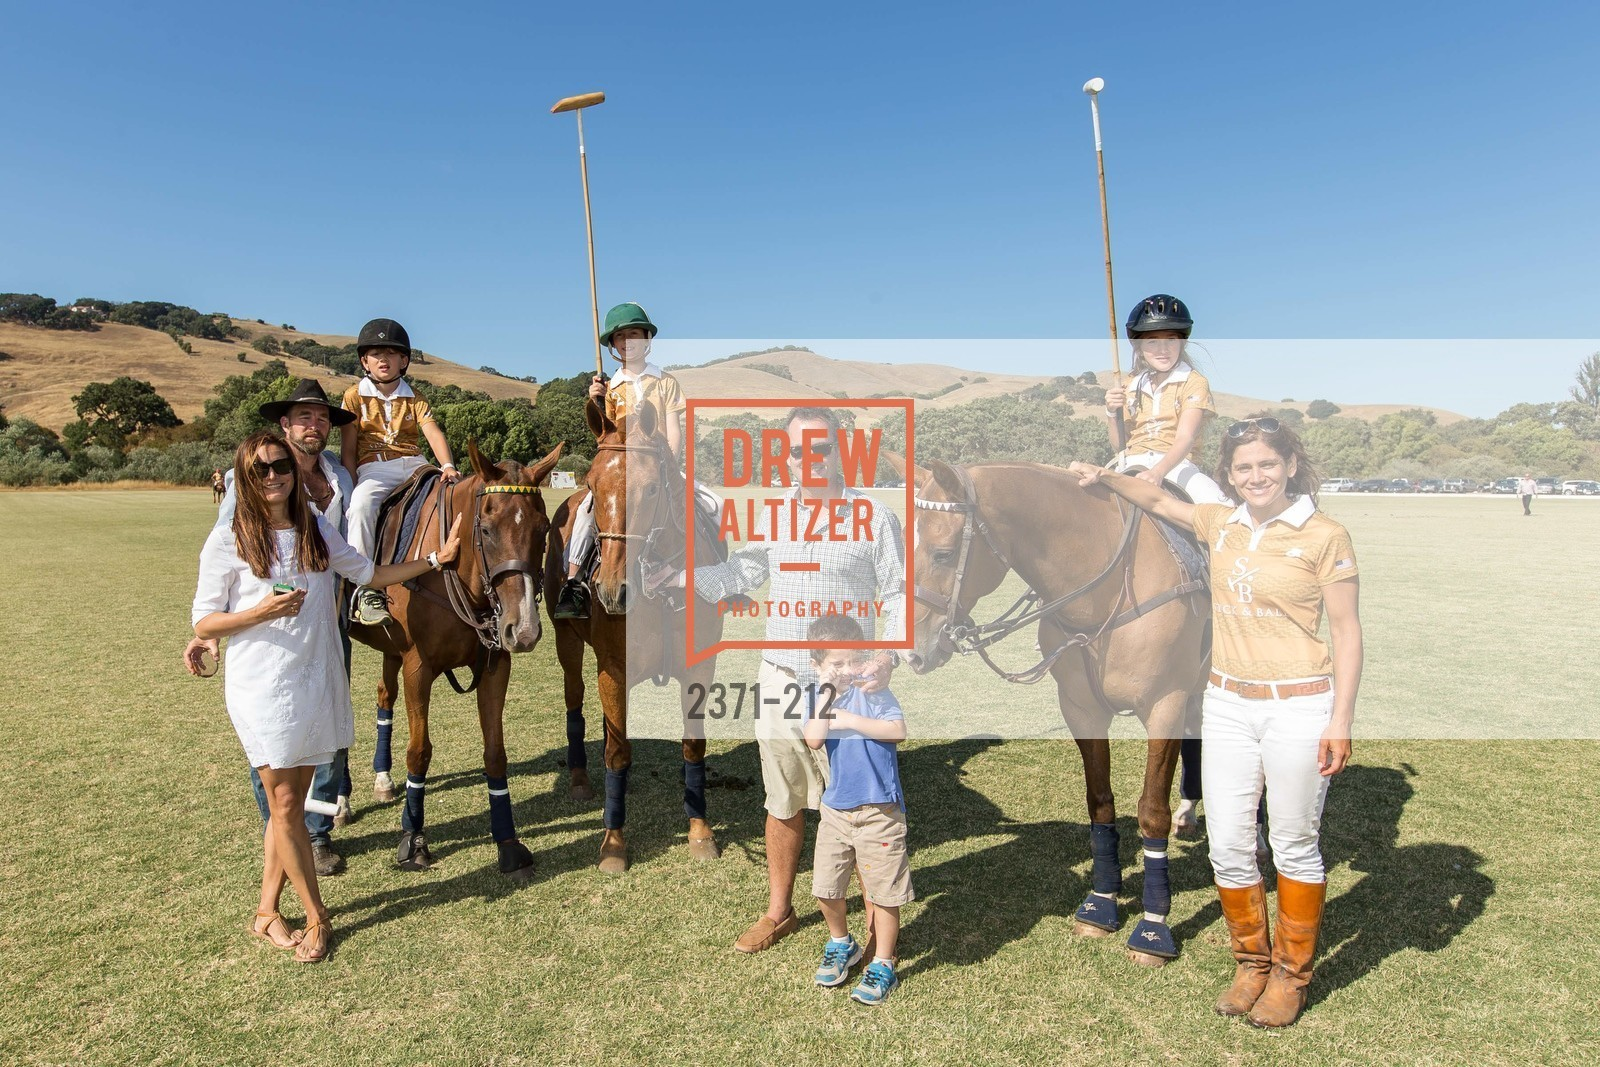 Hearst Welborn, Elizabeth Welborn, Stick & Ball Oyster Cup Polo Tournament, Cerro Pampa Polo Club, July 25th, 2015,Drew Altizer, Drew Altizer Photography, full-service agency, private events, San Francisco photographer, photographer california